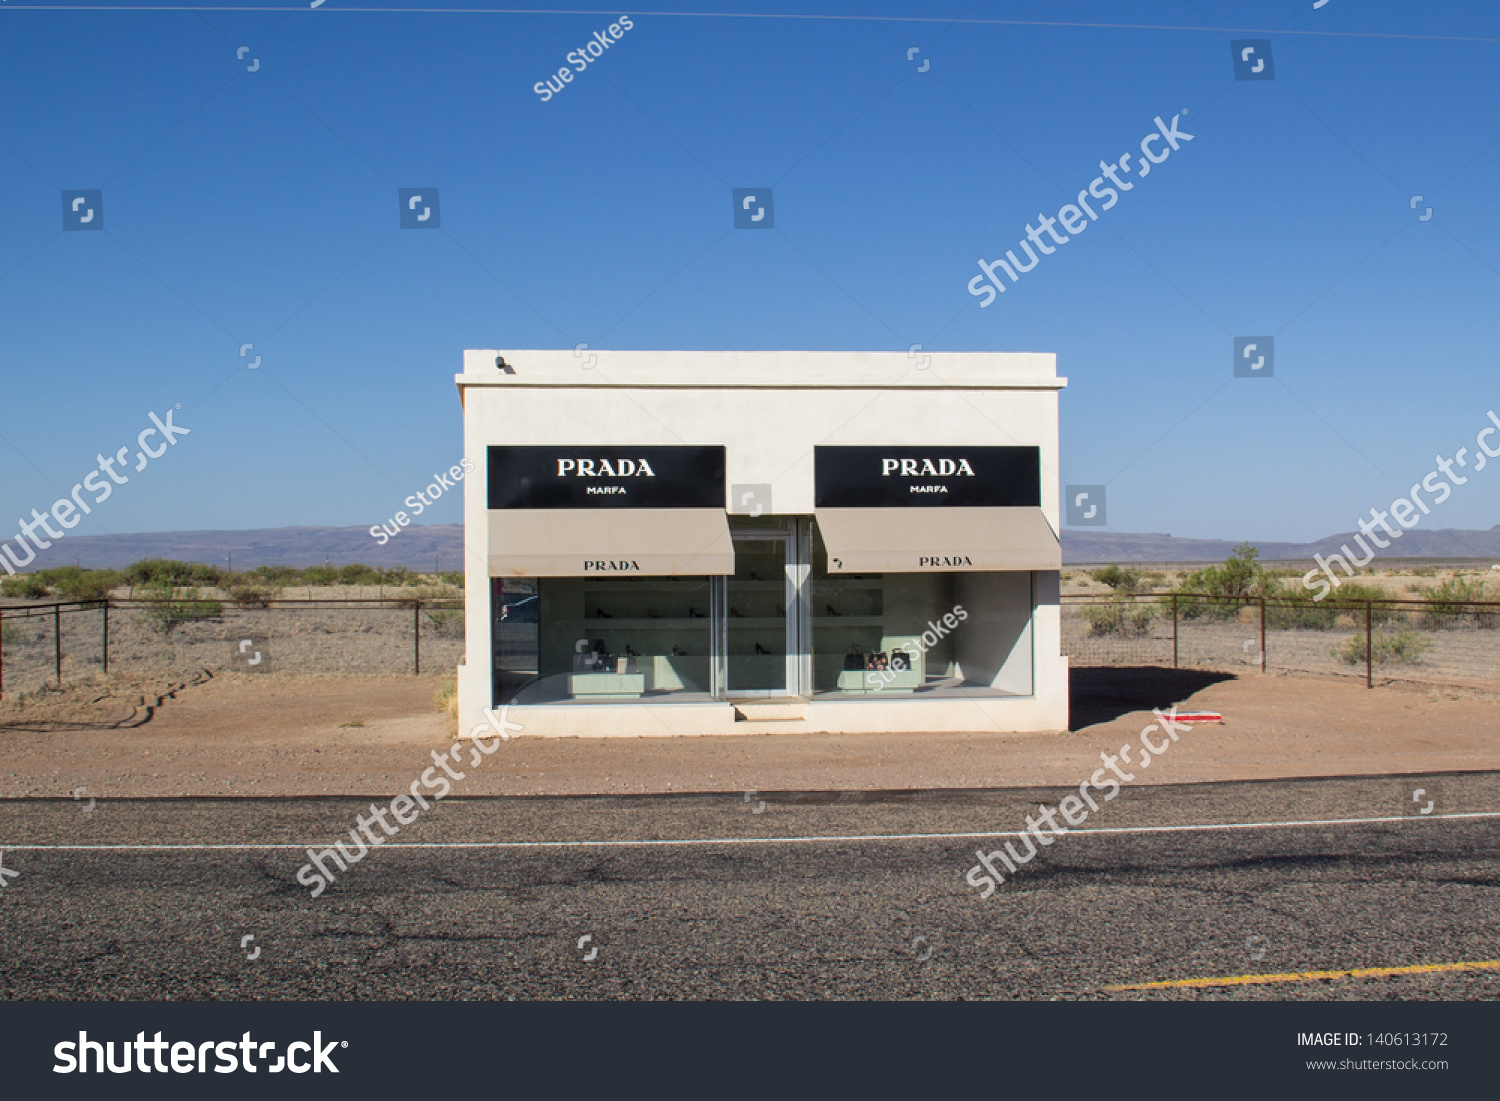 ValentineTxUsa May 30 The Marfa Prada Sculpture Sits On